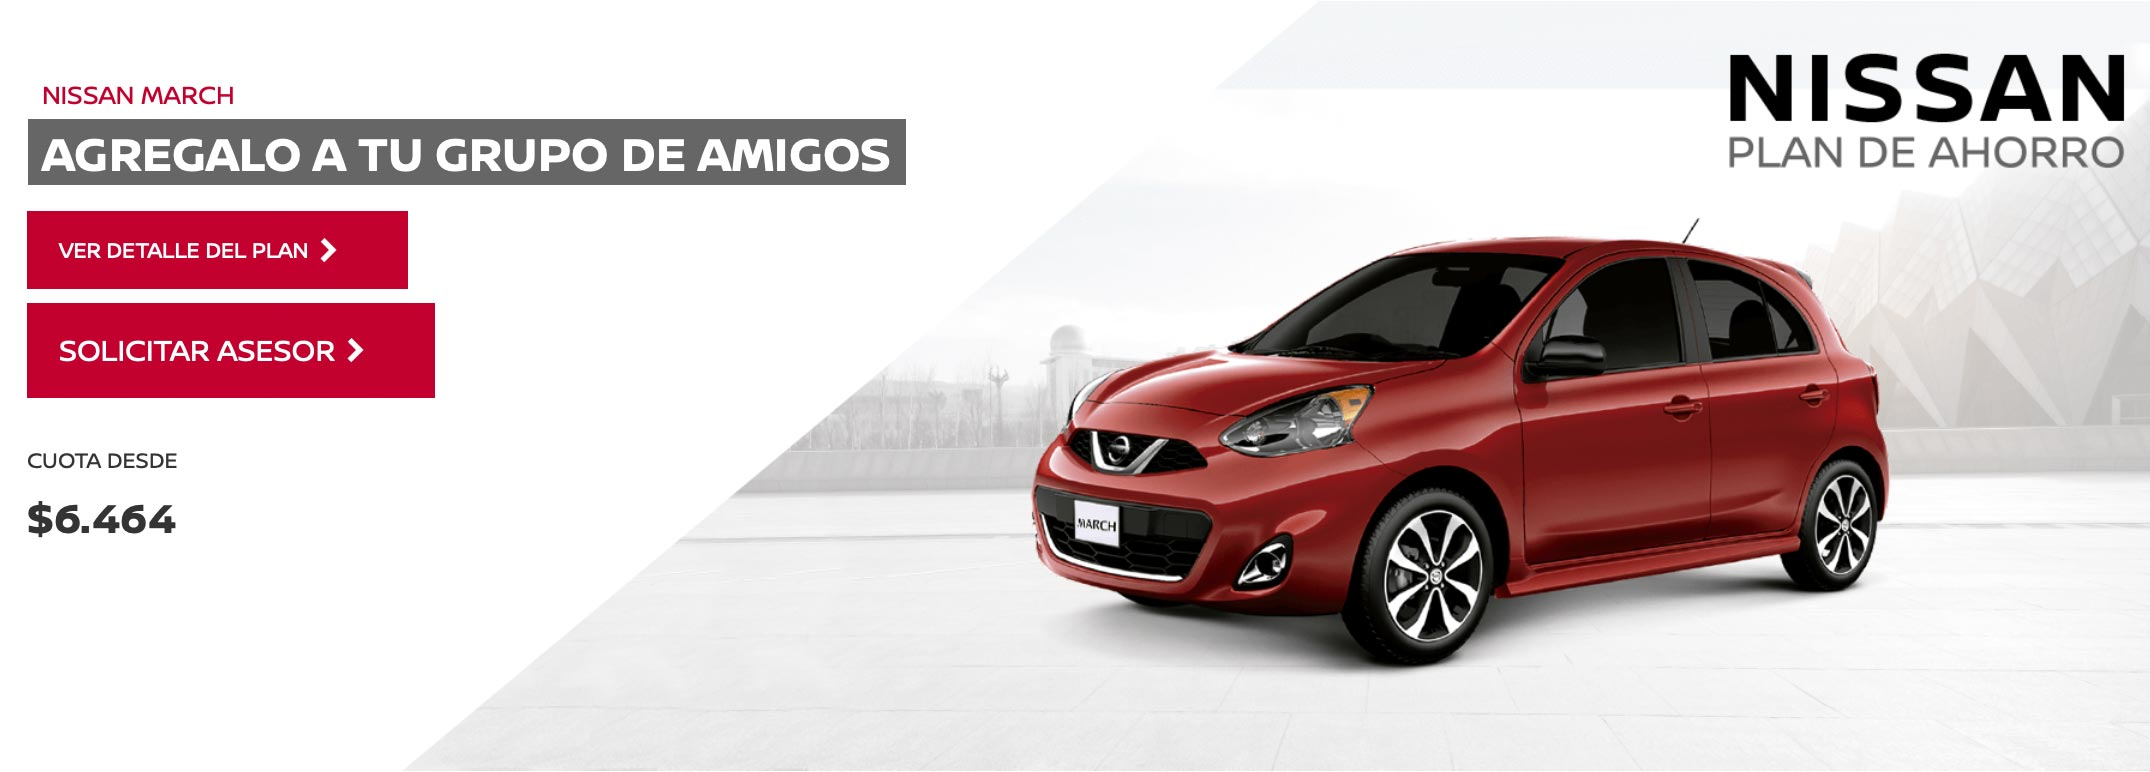 Plan de ahorro Nissan March